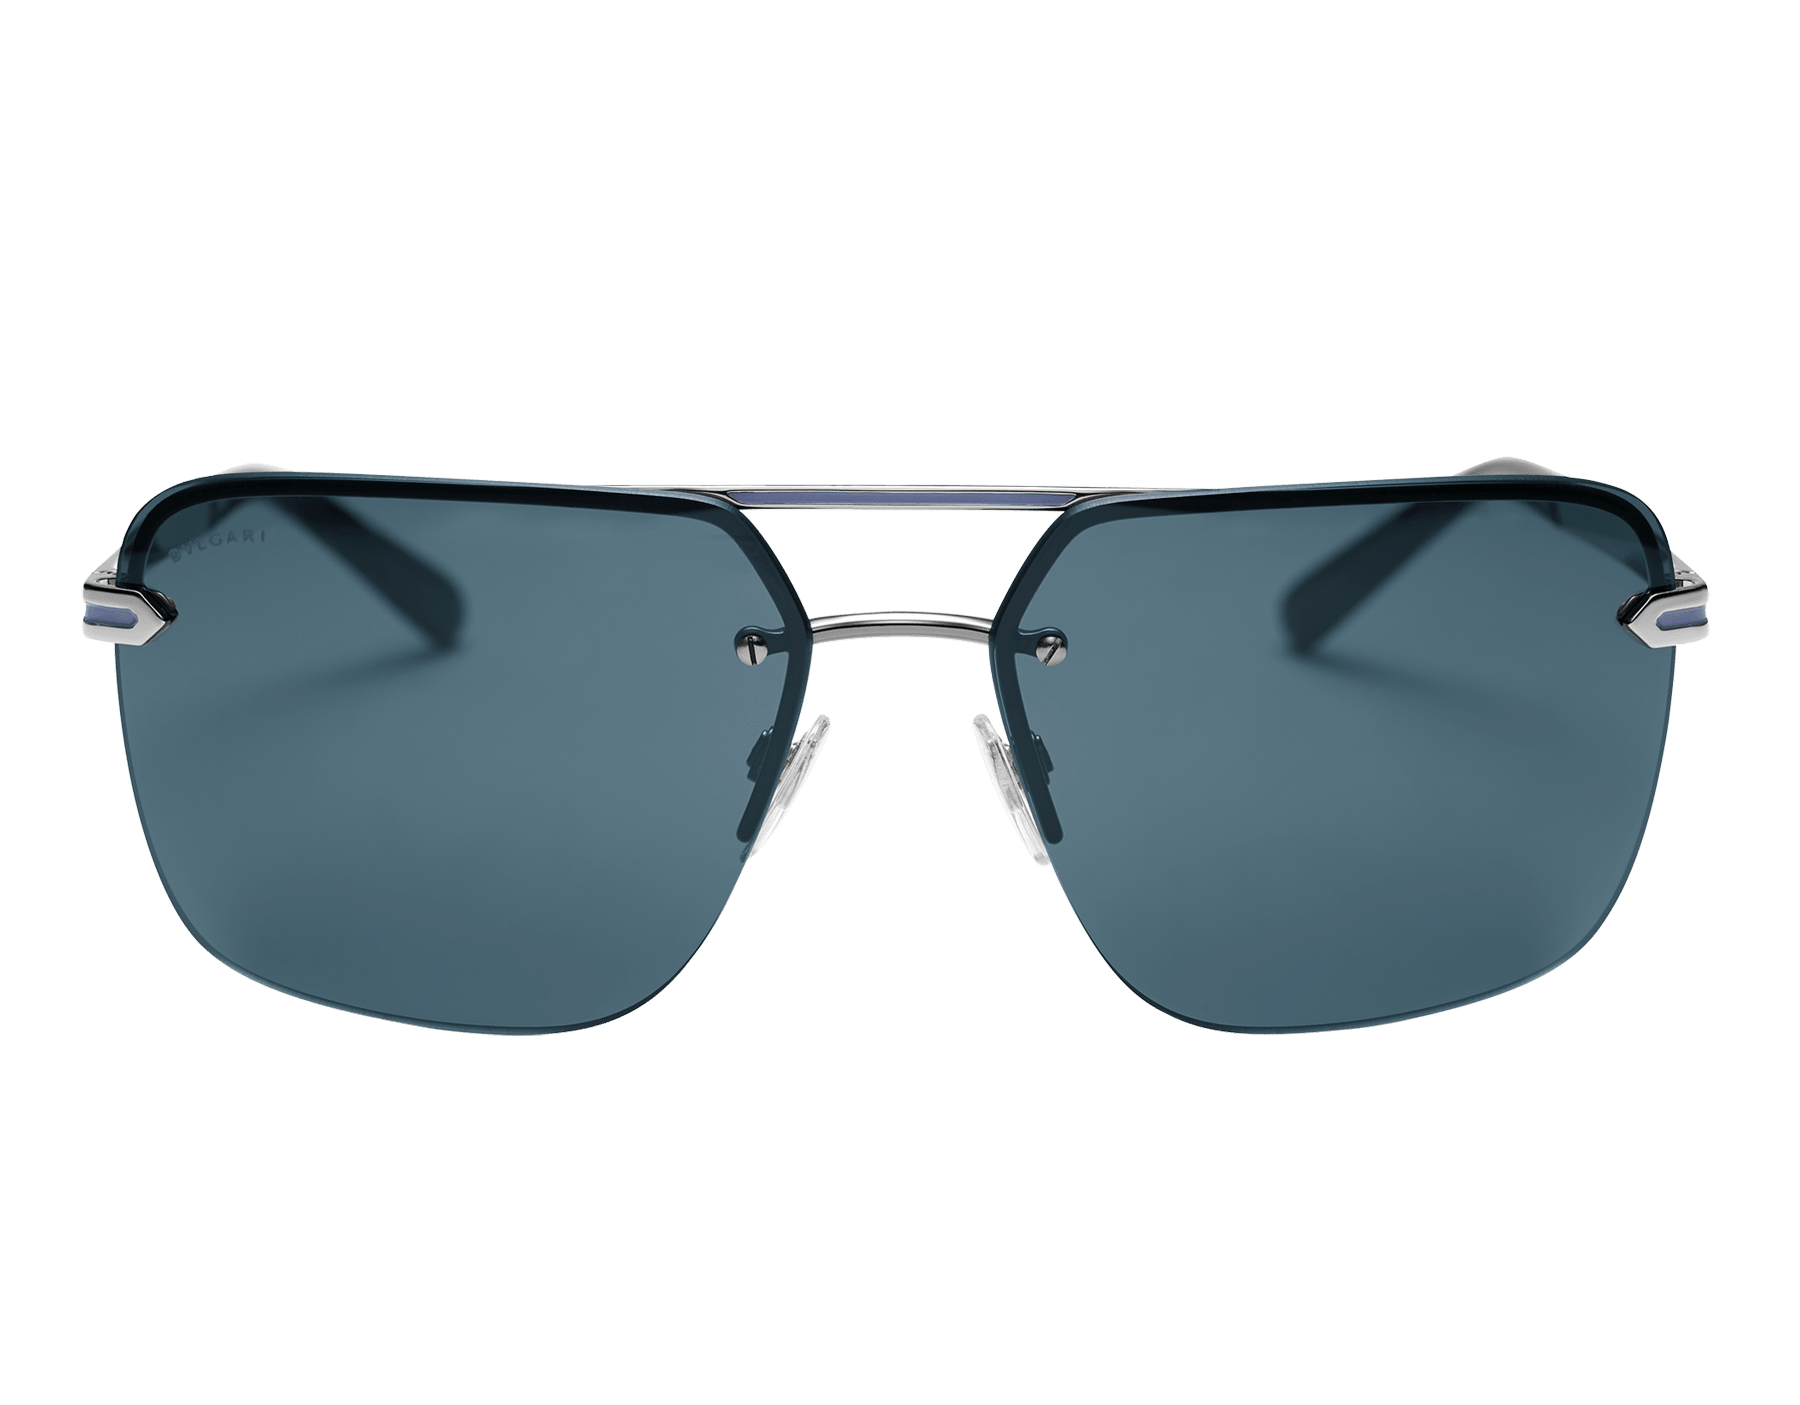 Bvlgari Bvlgari Man metal double bridge rectangular sunglasses. 904057 image 2